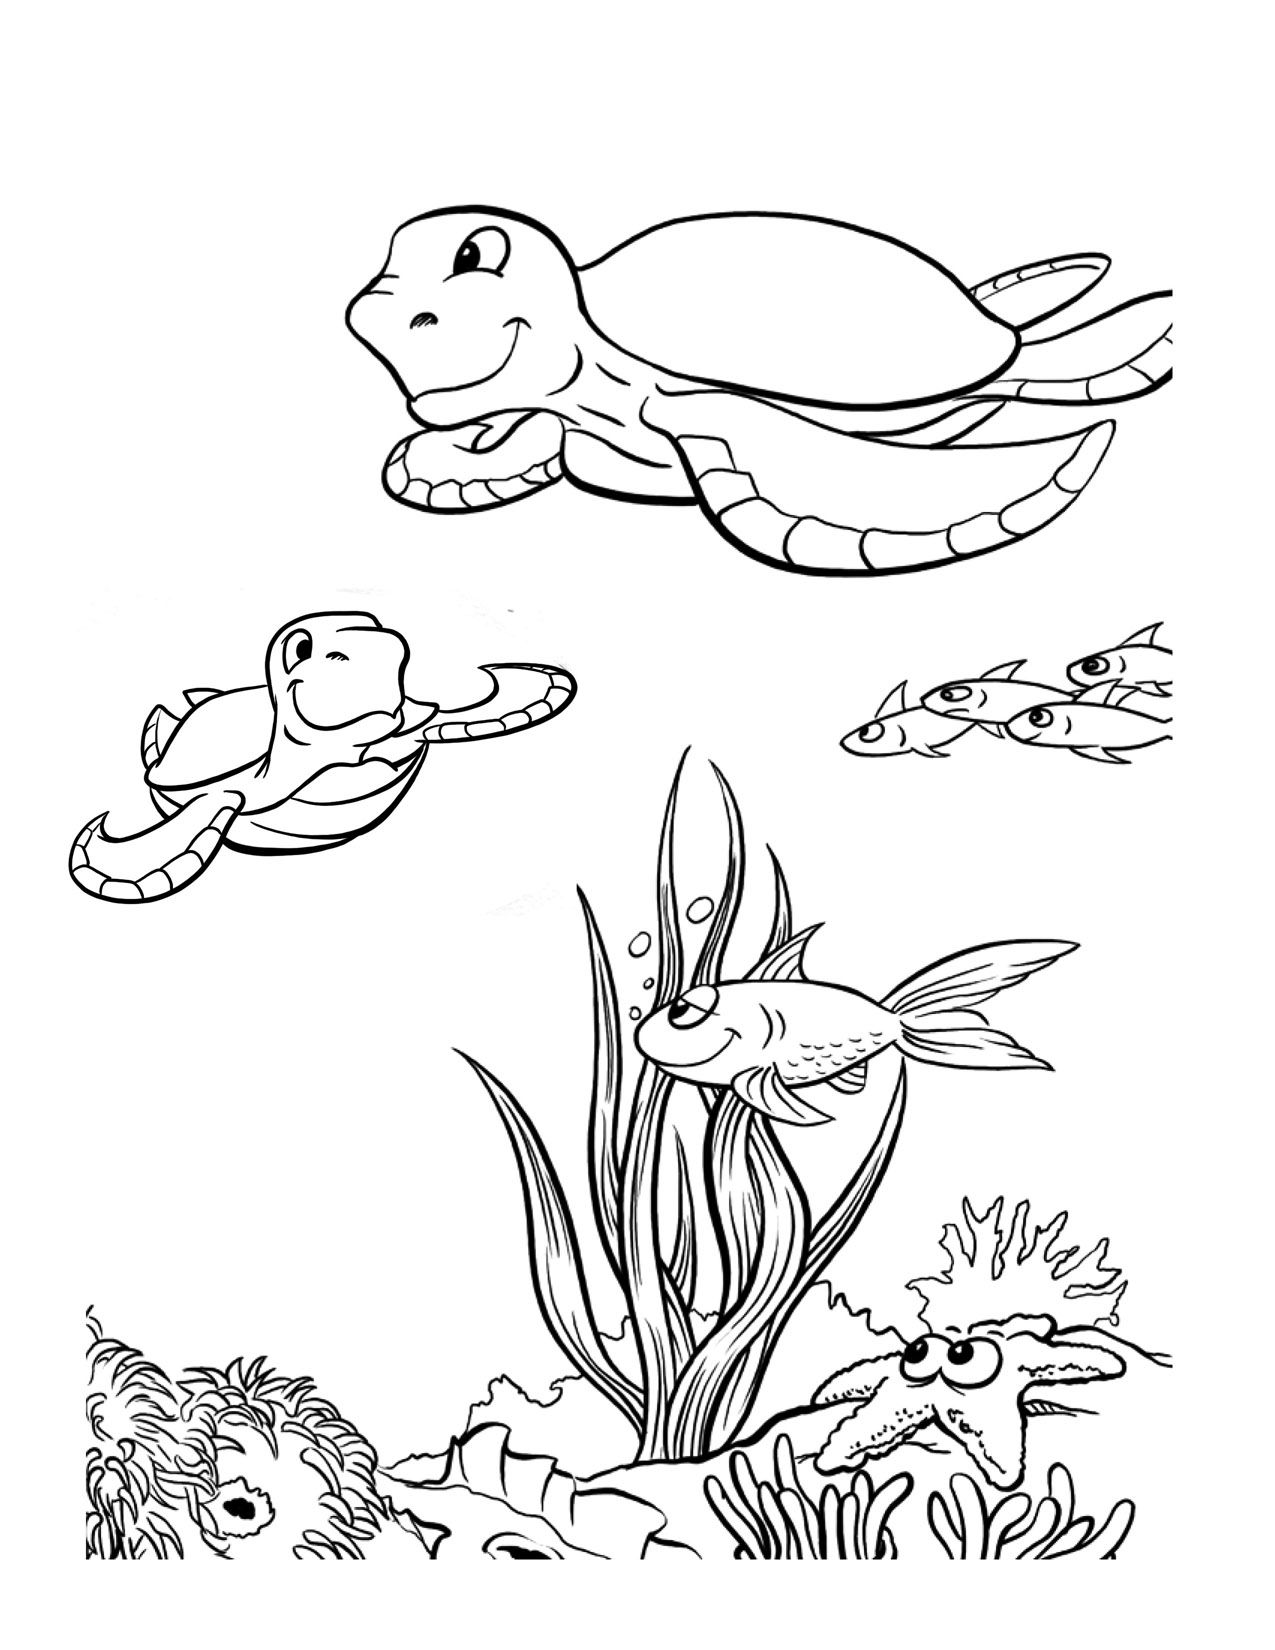 sea animals coloring pages printable best | Graphics & stencils ...